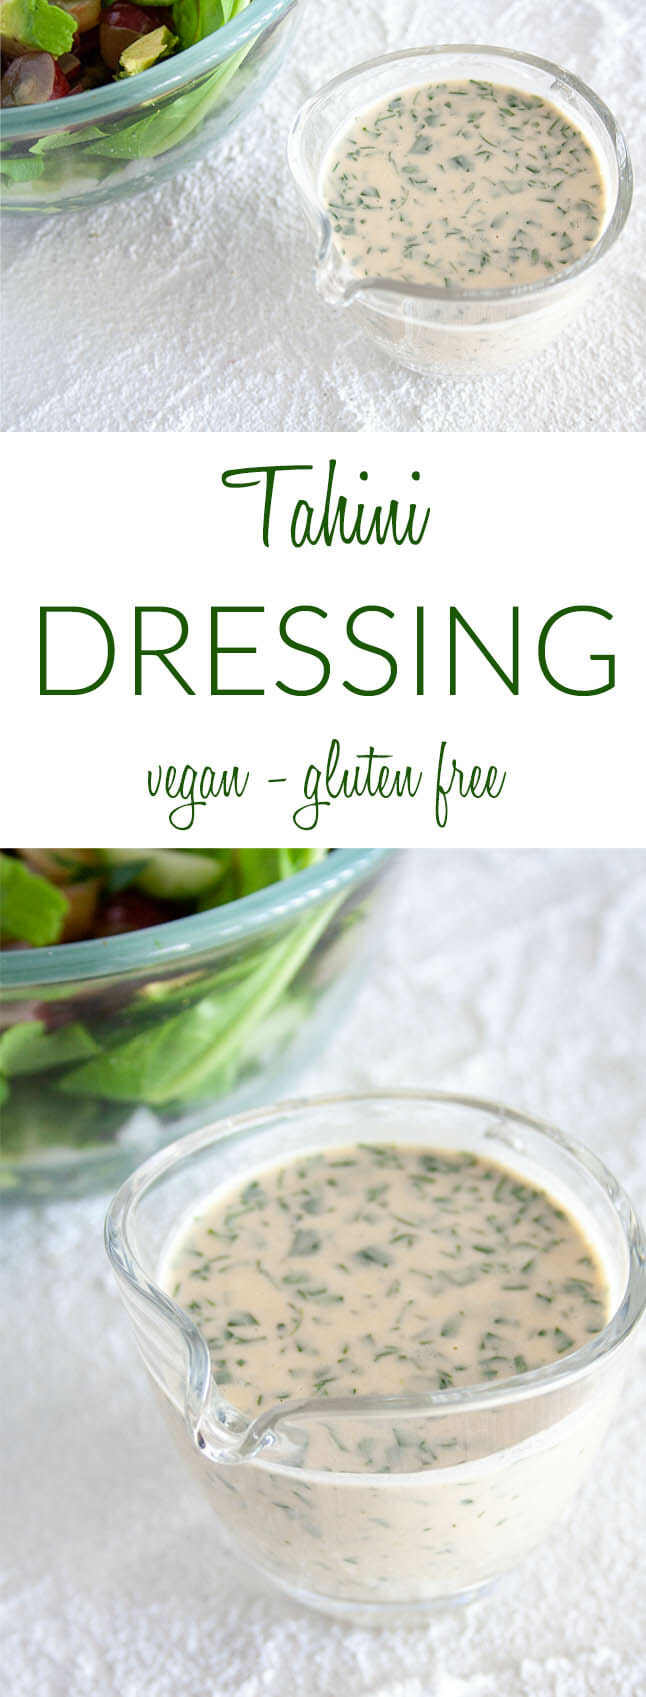 Tahini Dressing collage photo with text.